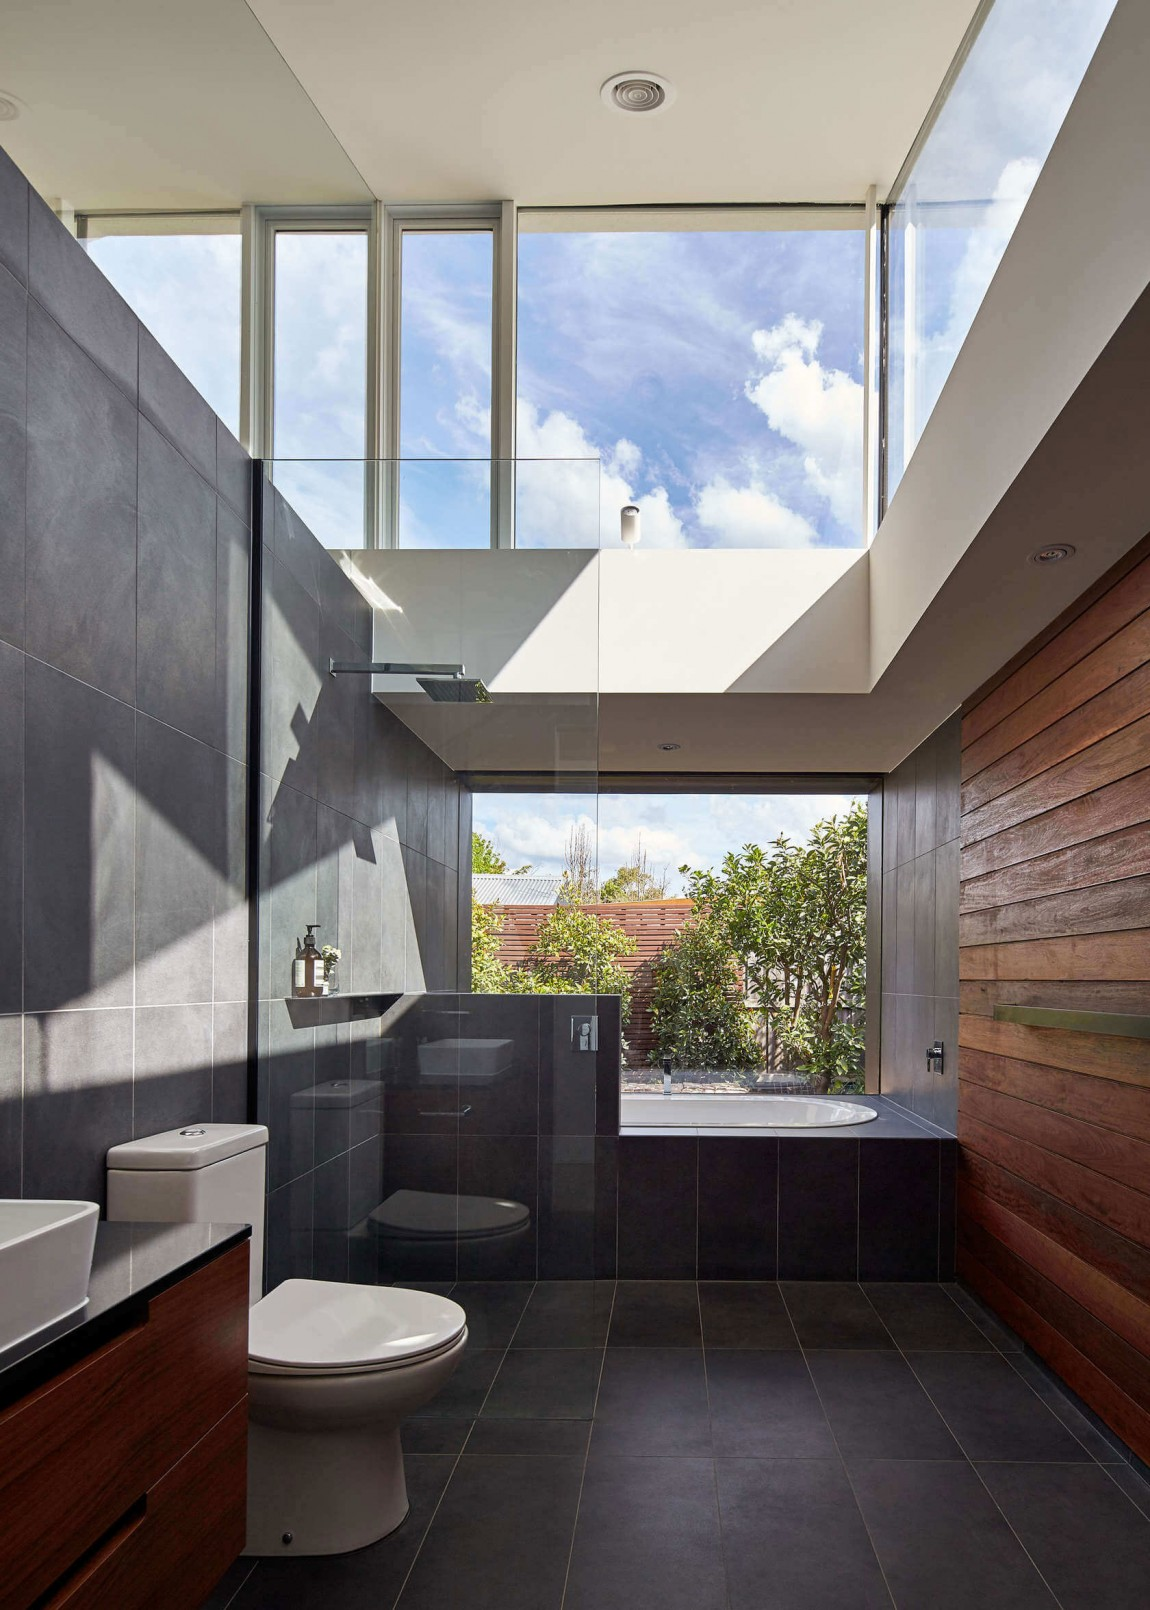 Ingenious bathroom design with accent wood wall and glassy charm